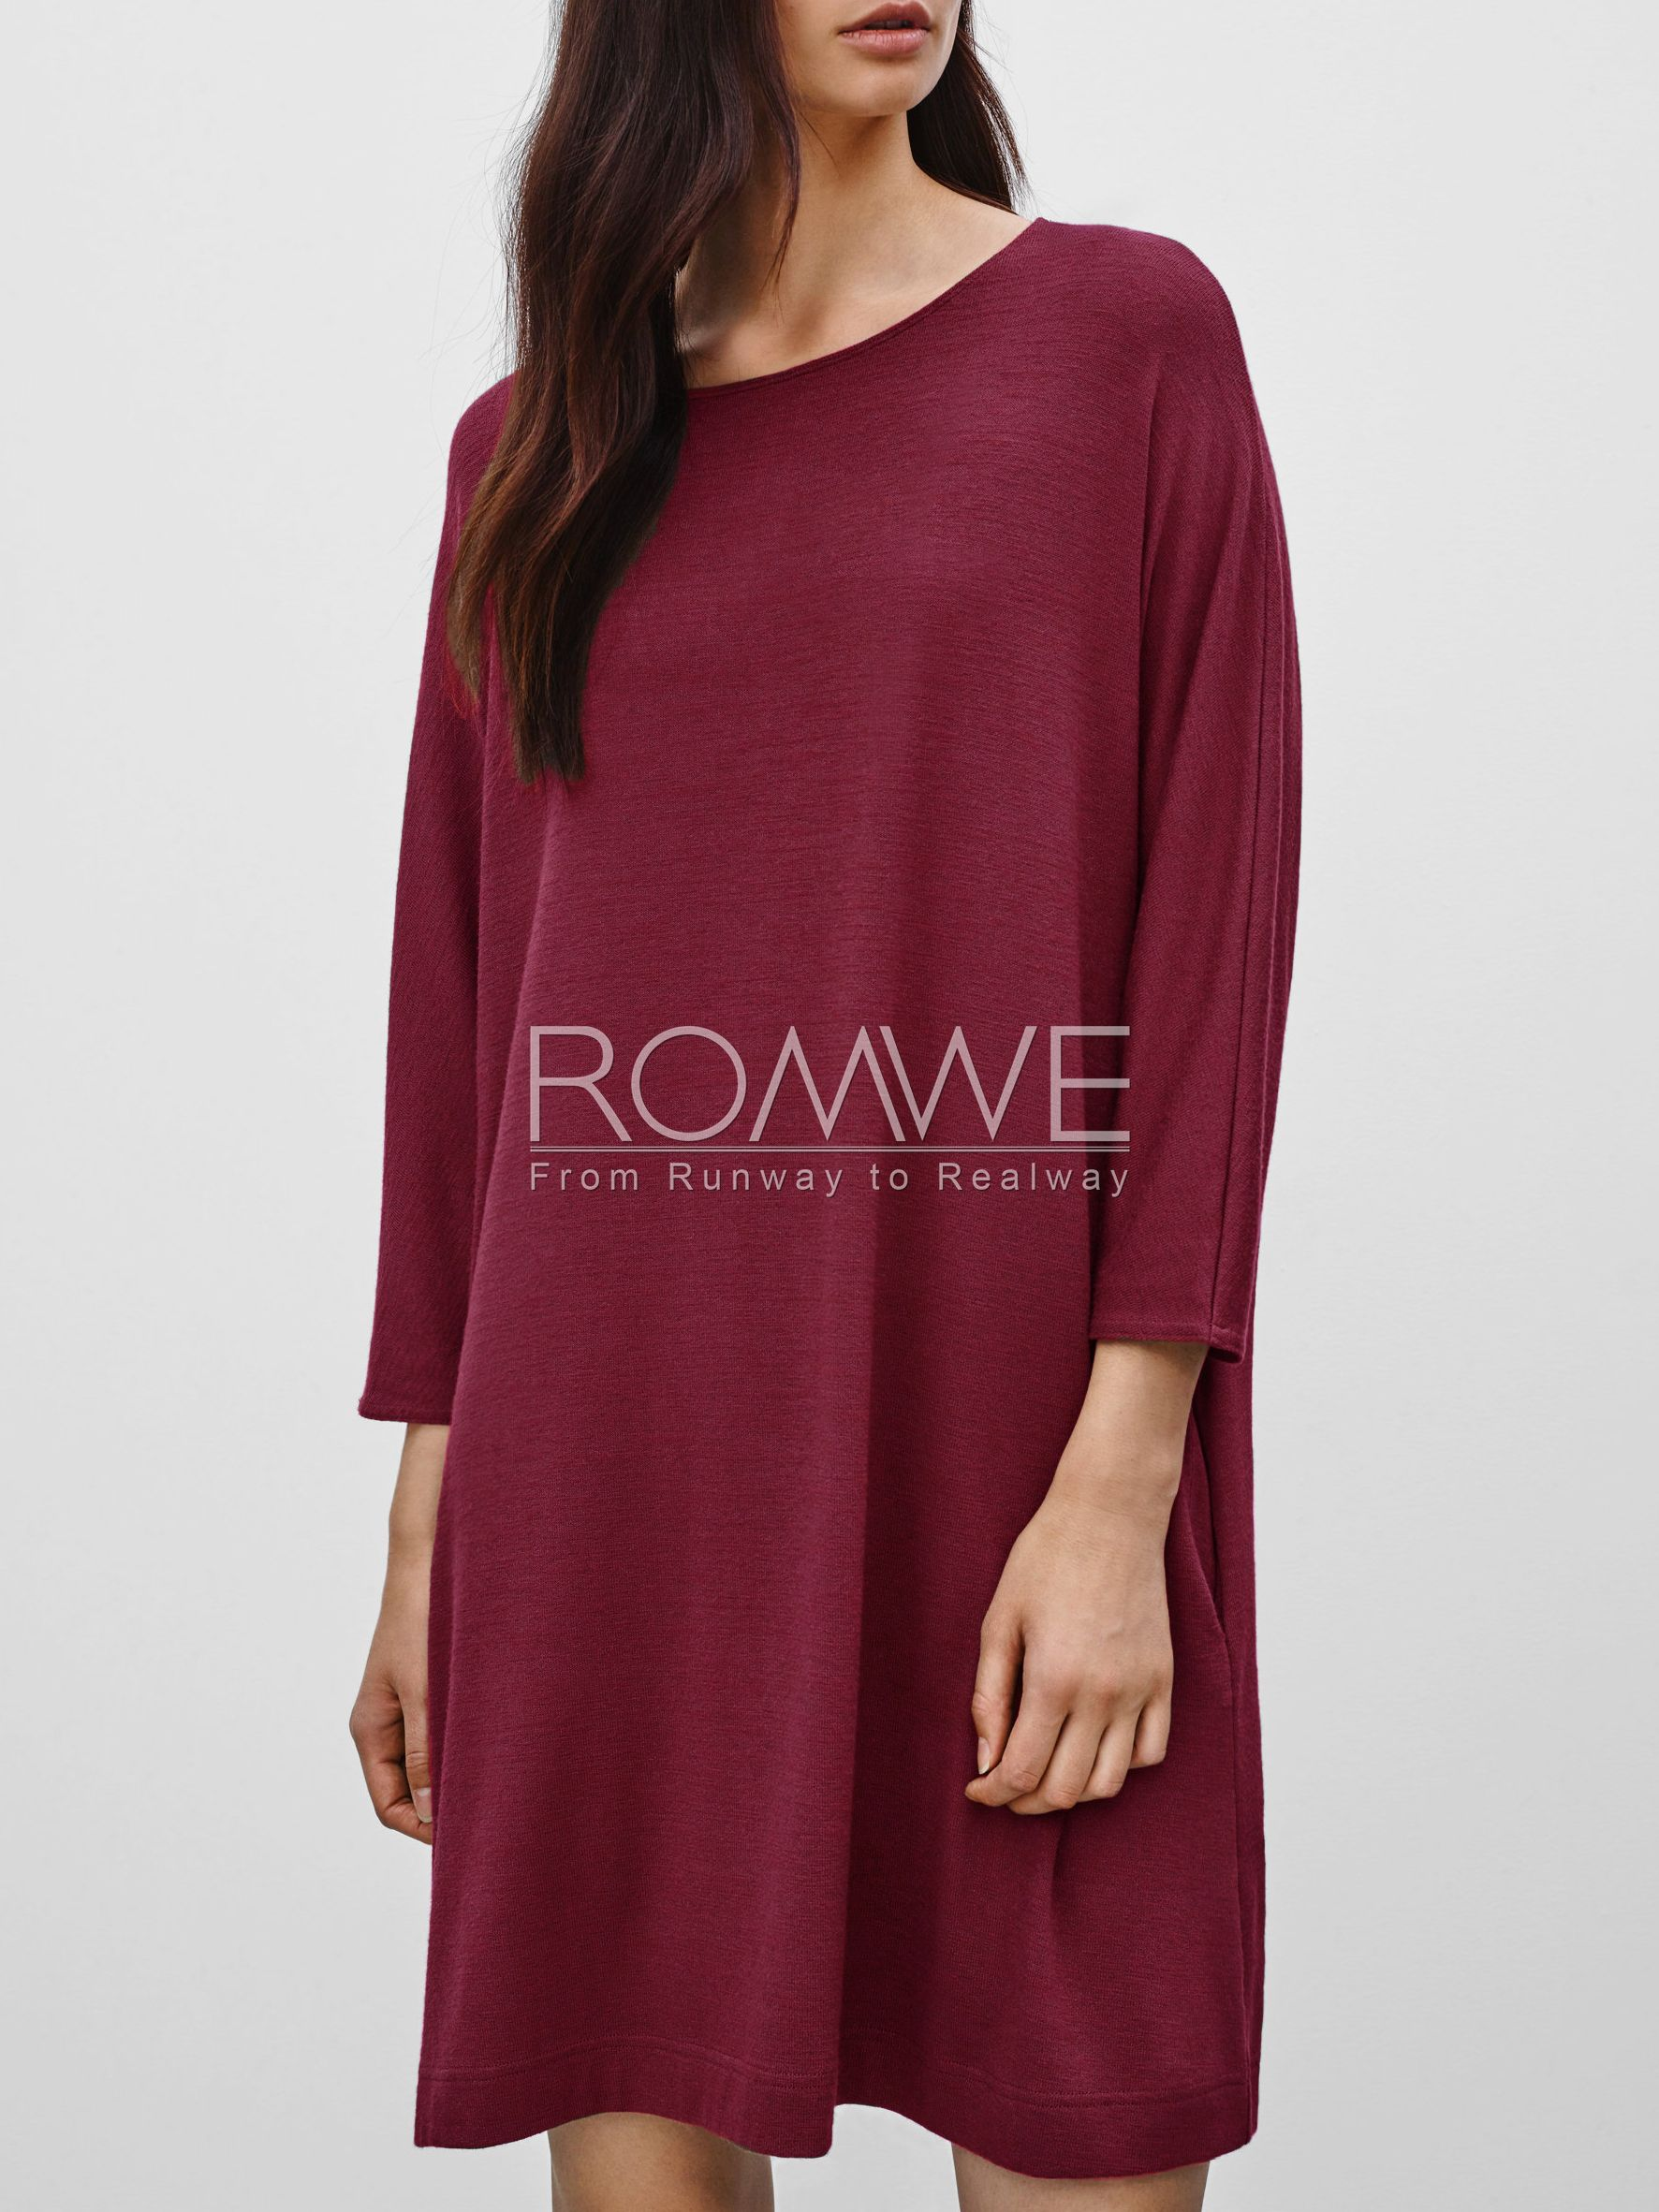 Wine Red Long Sleeve Casual Dress 21.99